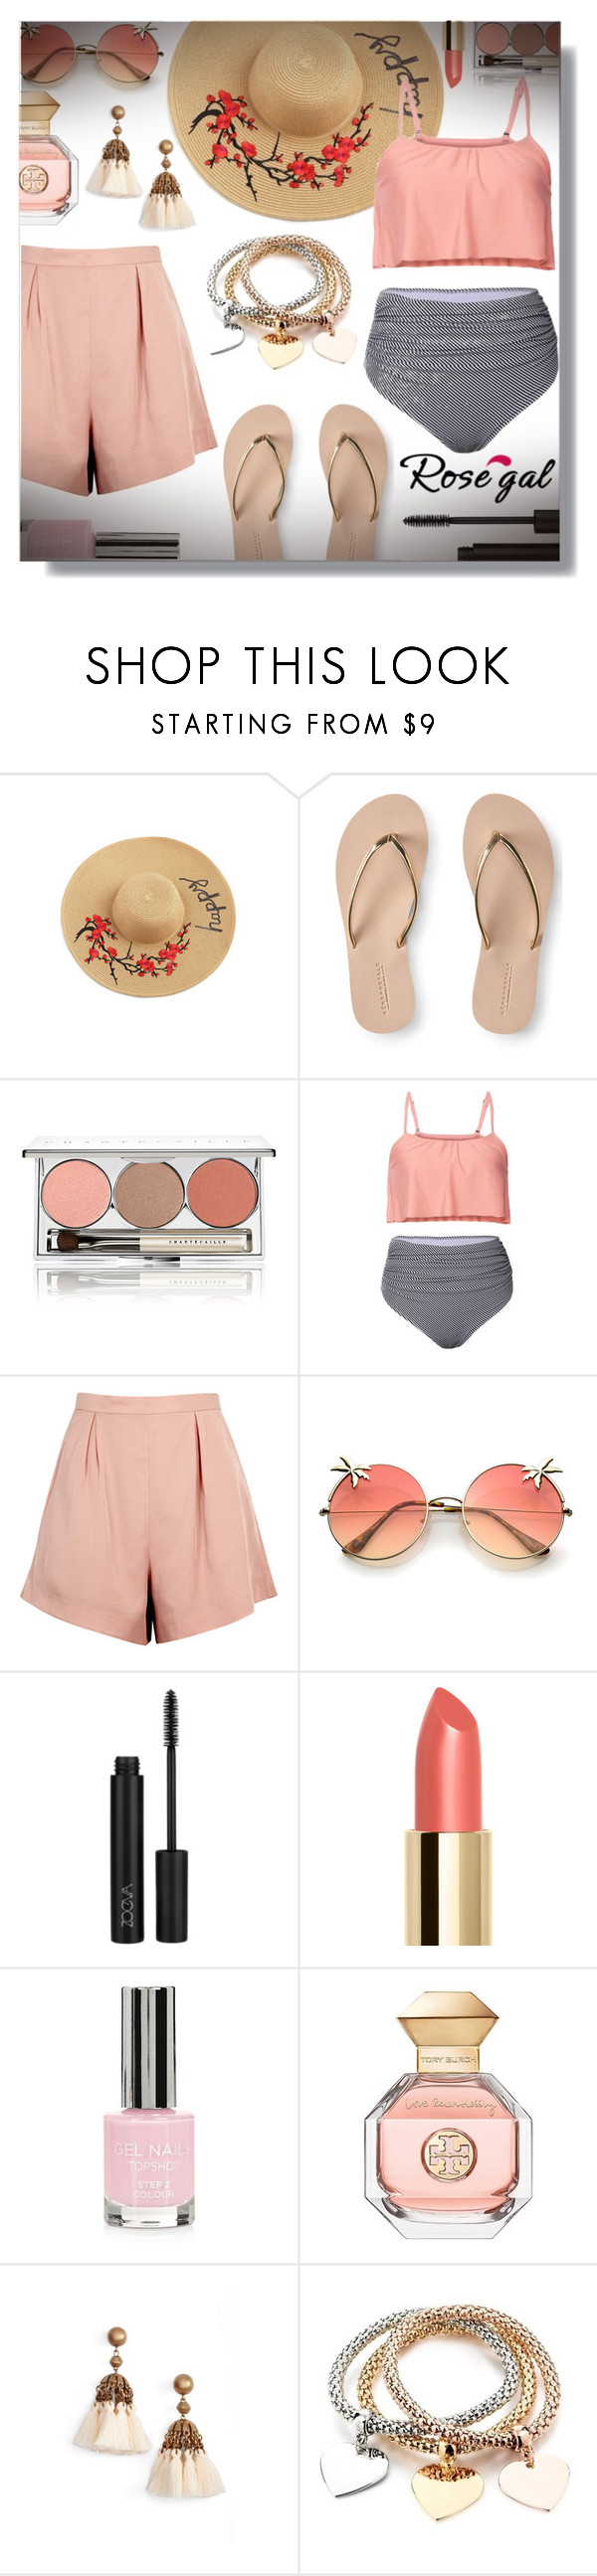 """Striped High Waisted Ruffle Bikini Set - Rosegal Contest!"" by sarahguo ❤ liked on Polyvore featuring Aéropostale, Chantecaille, Finders Keepers, Topshop, Tory Burch and Loren Hope"